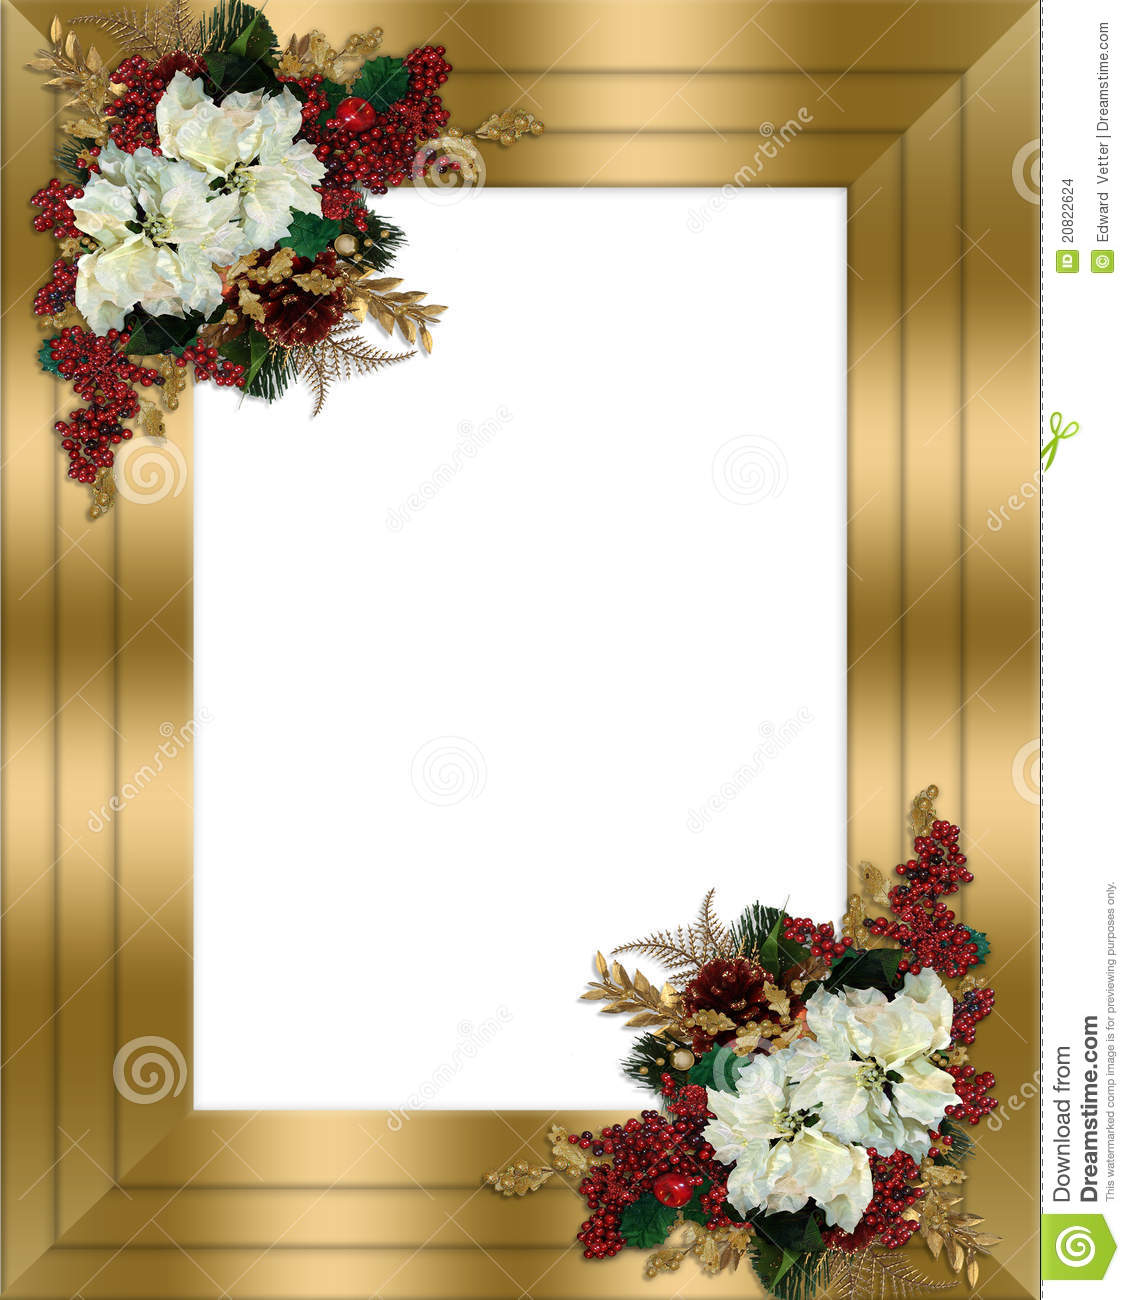 Christmas Border Gold Floral Stock Images - Image: 20822624